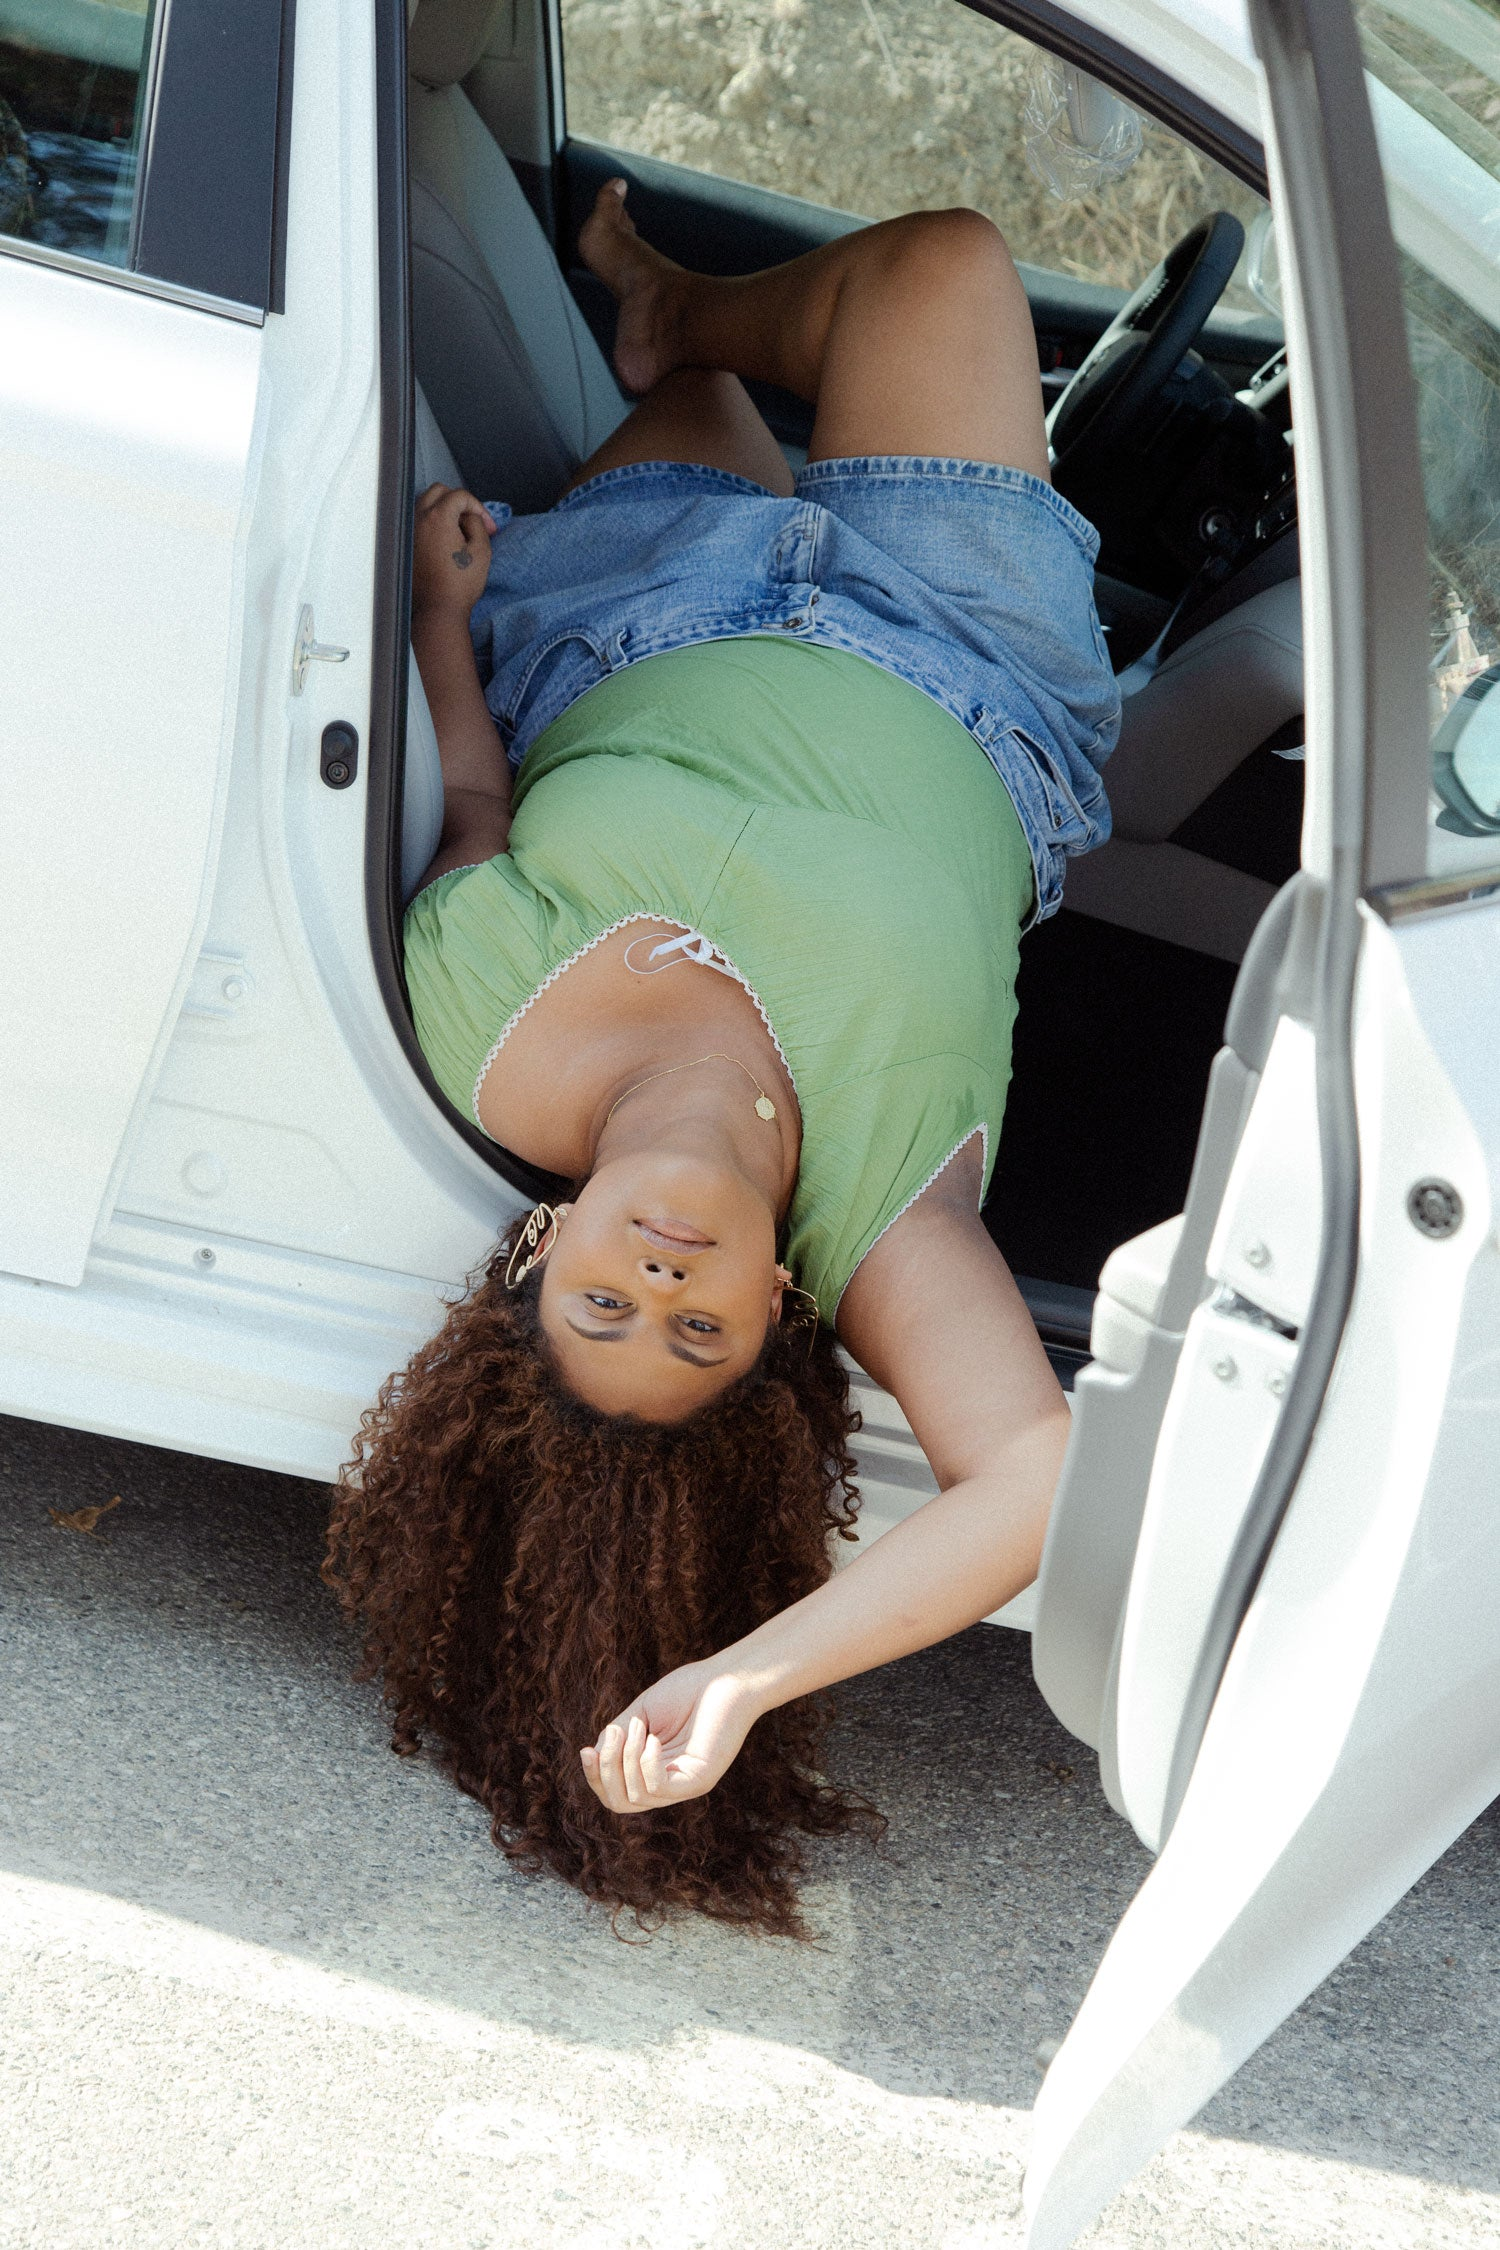 Fashion model hangs upside down out of of car wearing vintage plus size 1990s top and high waisted jeans shorts